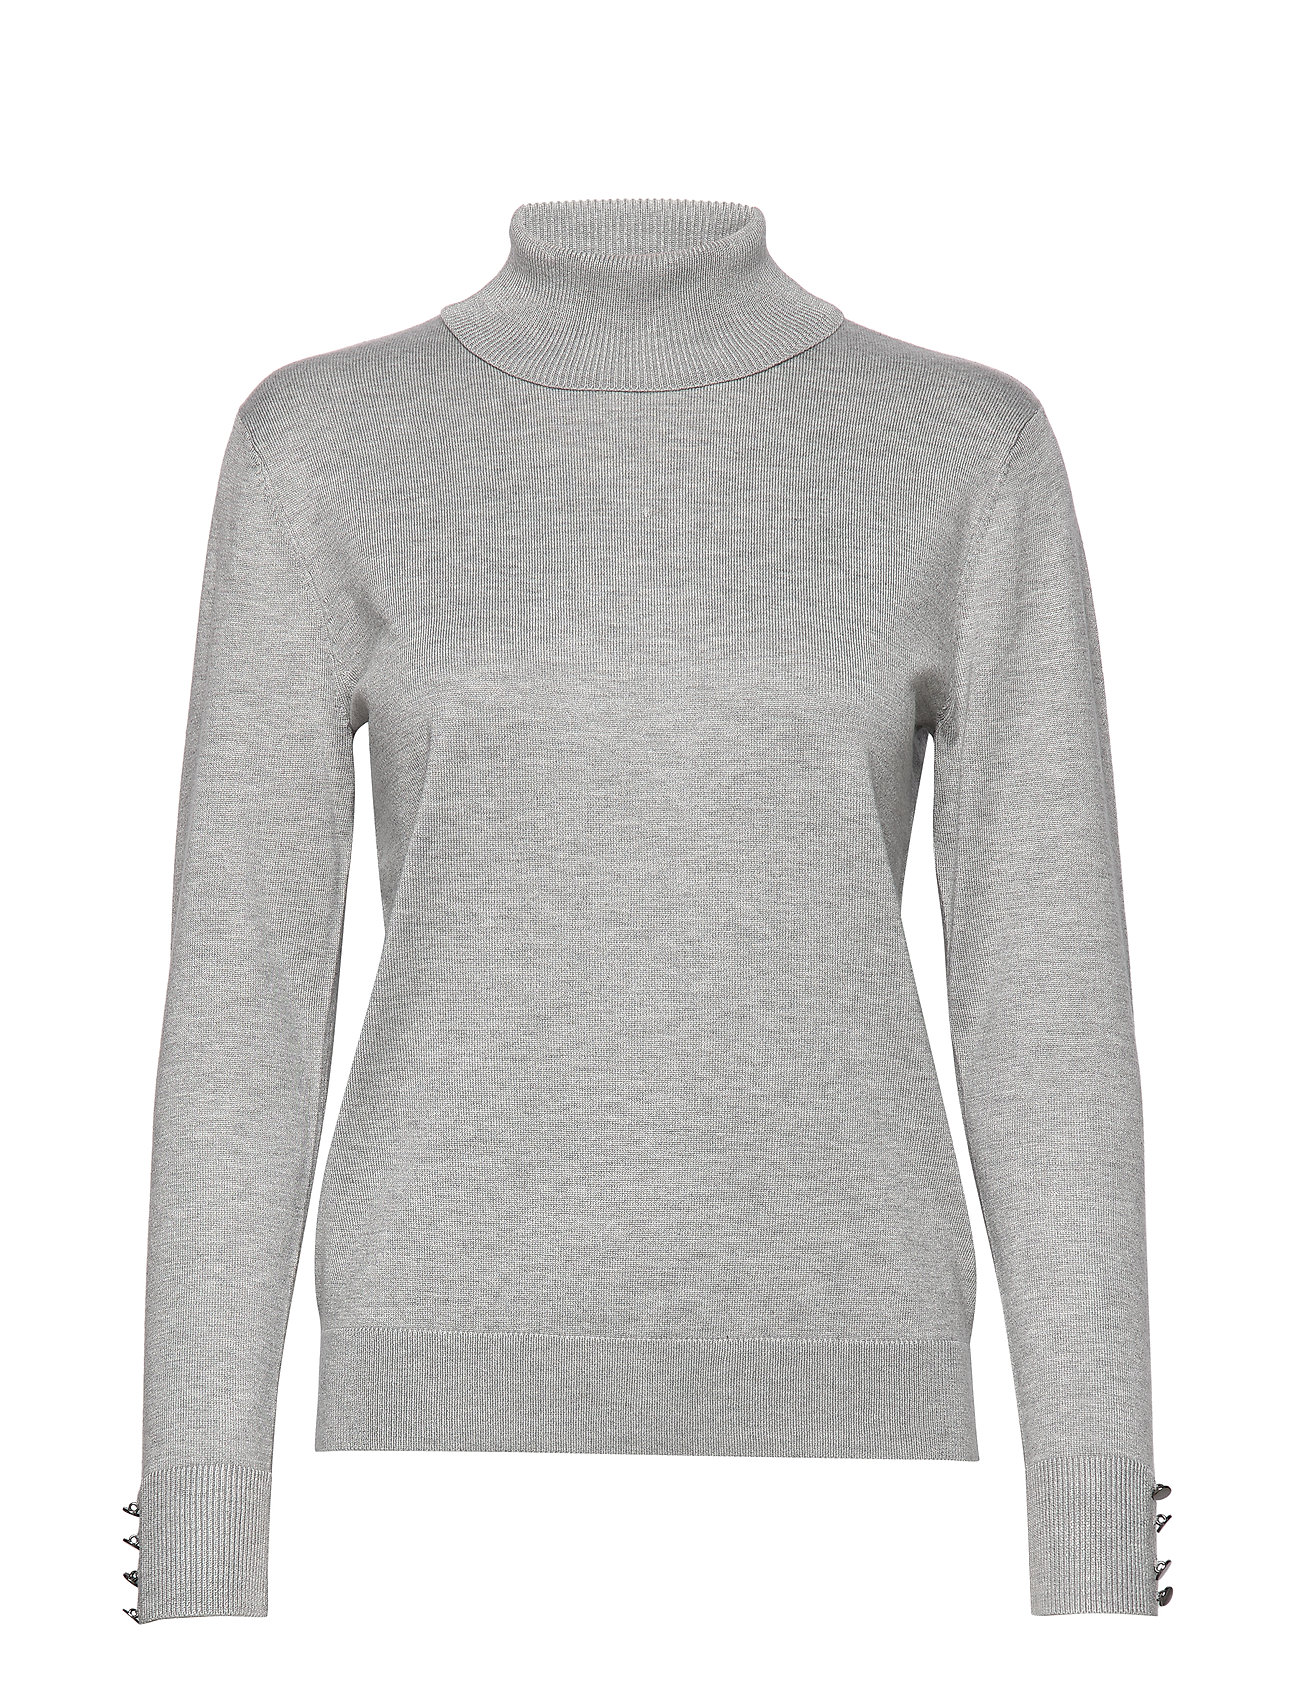 knit Pullover MelangeBrandtex Pullover Grey knit Lightlight Grey Pullover Lightlight MelangeBrandtex q4ARLSc5j3